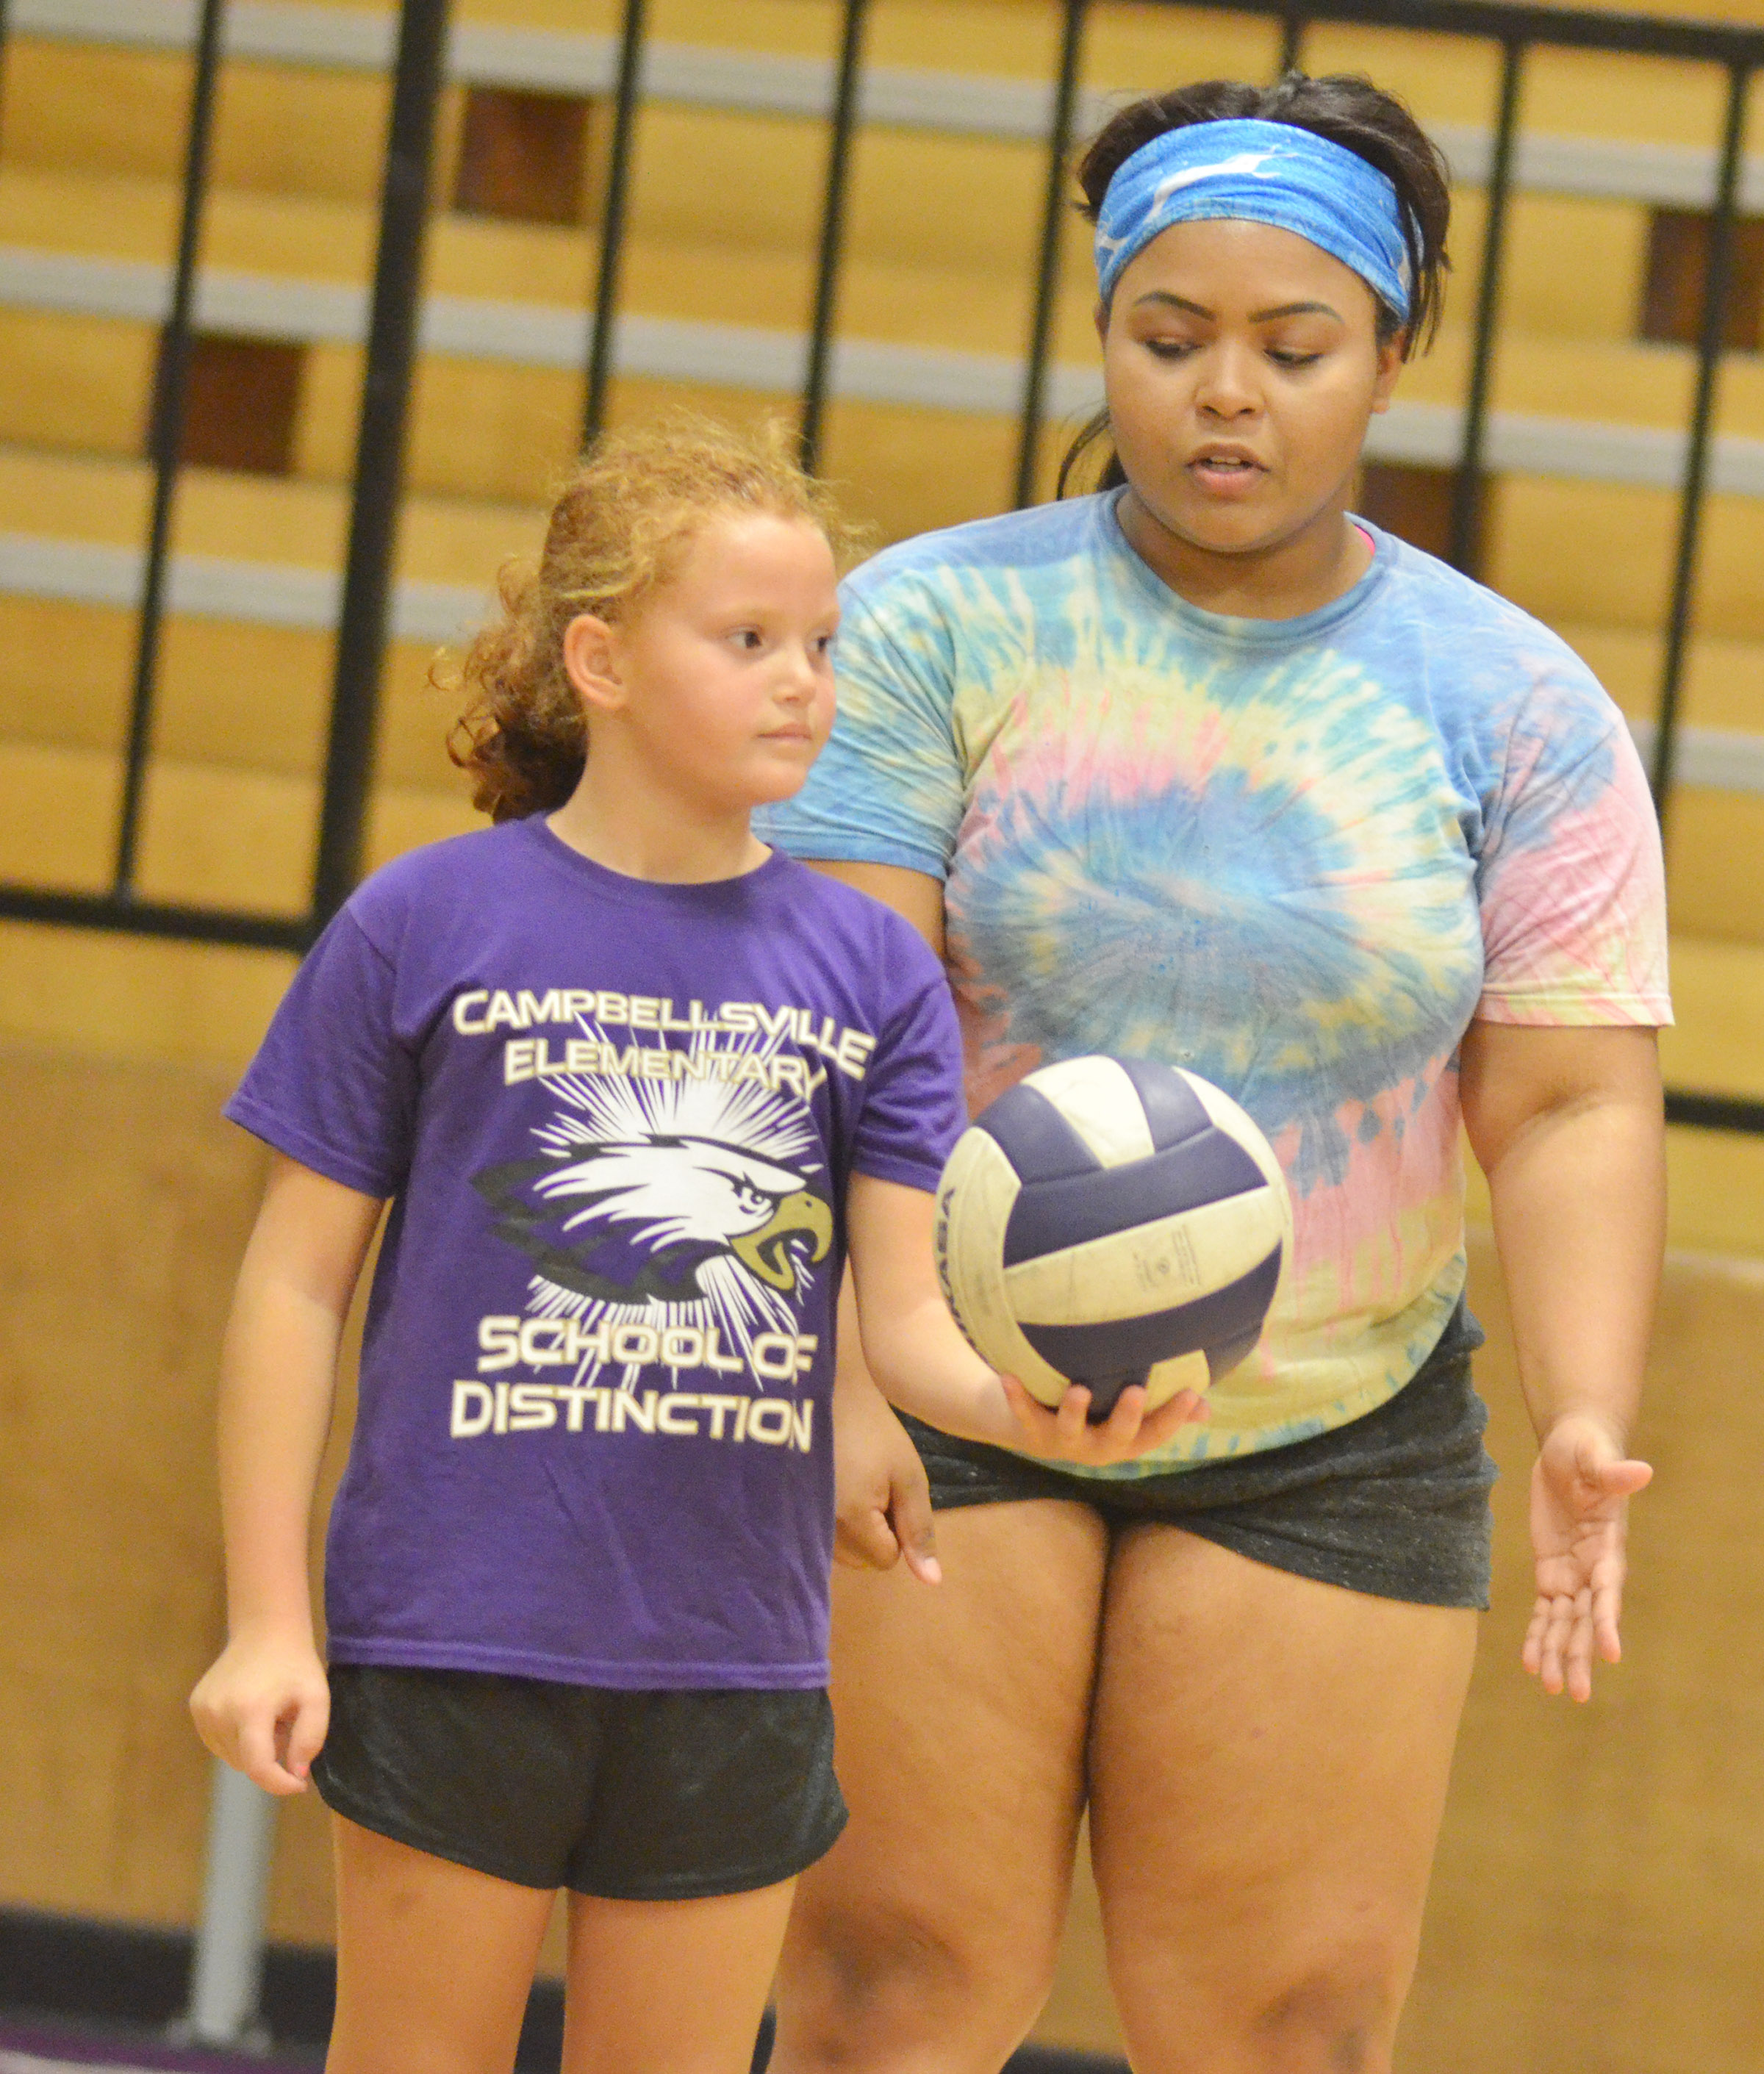 CHS junior Natalie Caldwell helps third-grader Analeigh Foster serve.